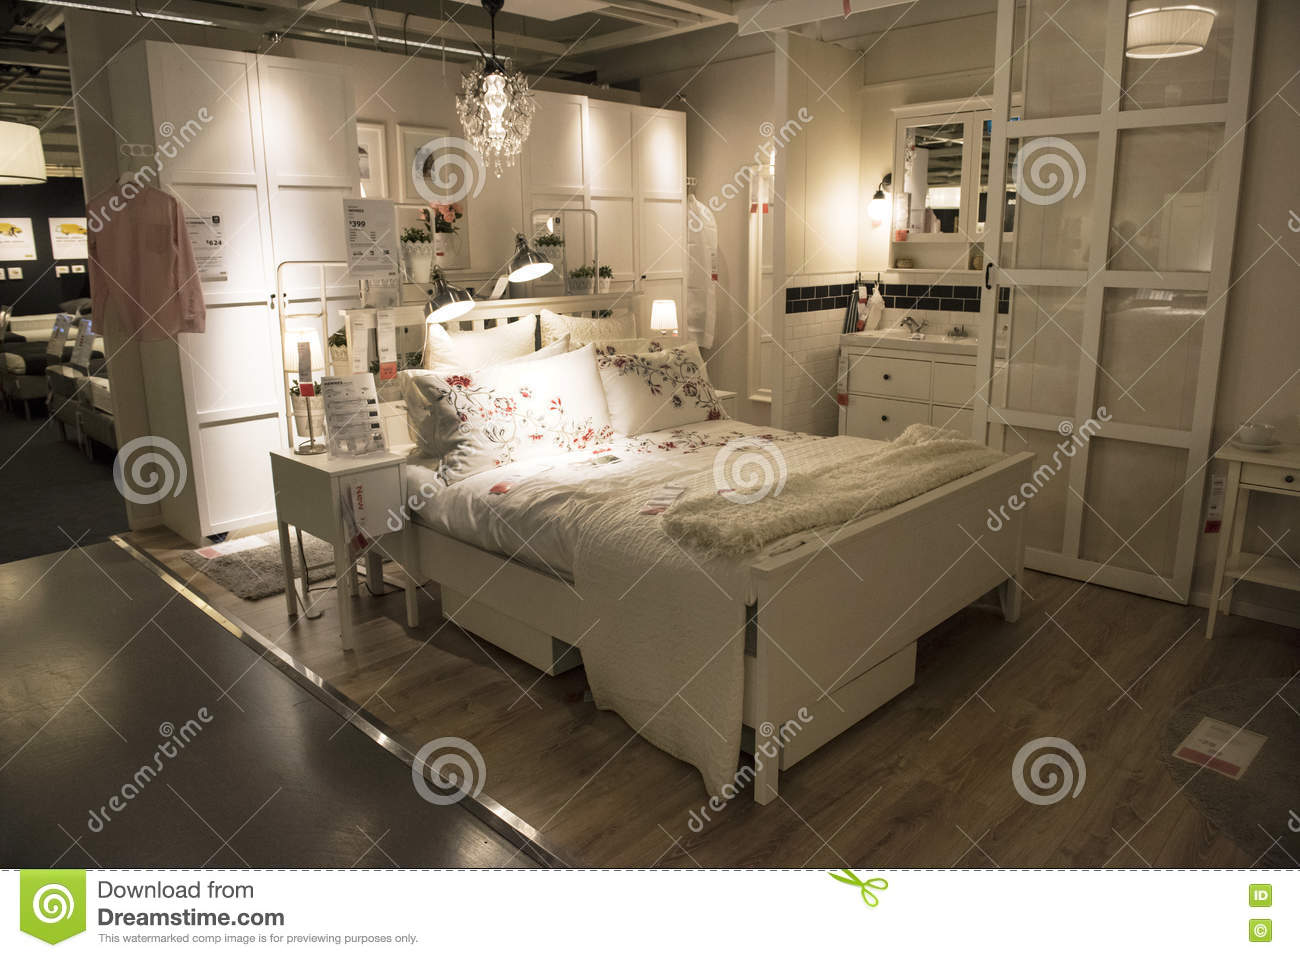 Chambre coucher id ale dans le magasin d 39 ikea sydney photo stock ditorial image du bedroom - Chambre a coucher magasin ...